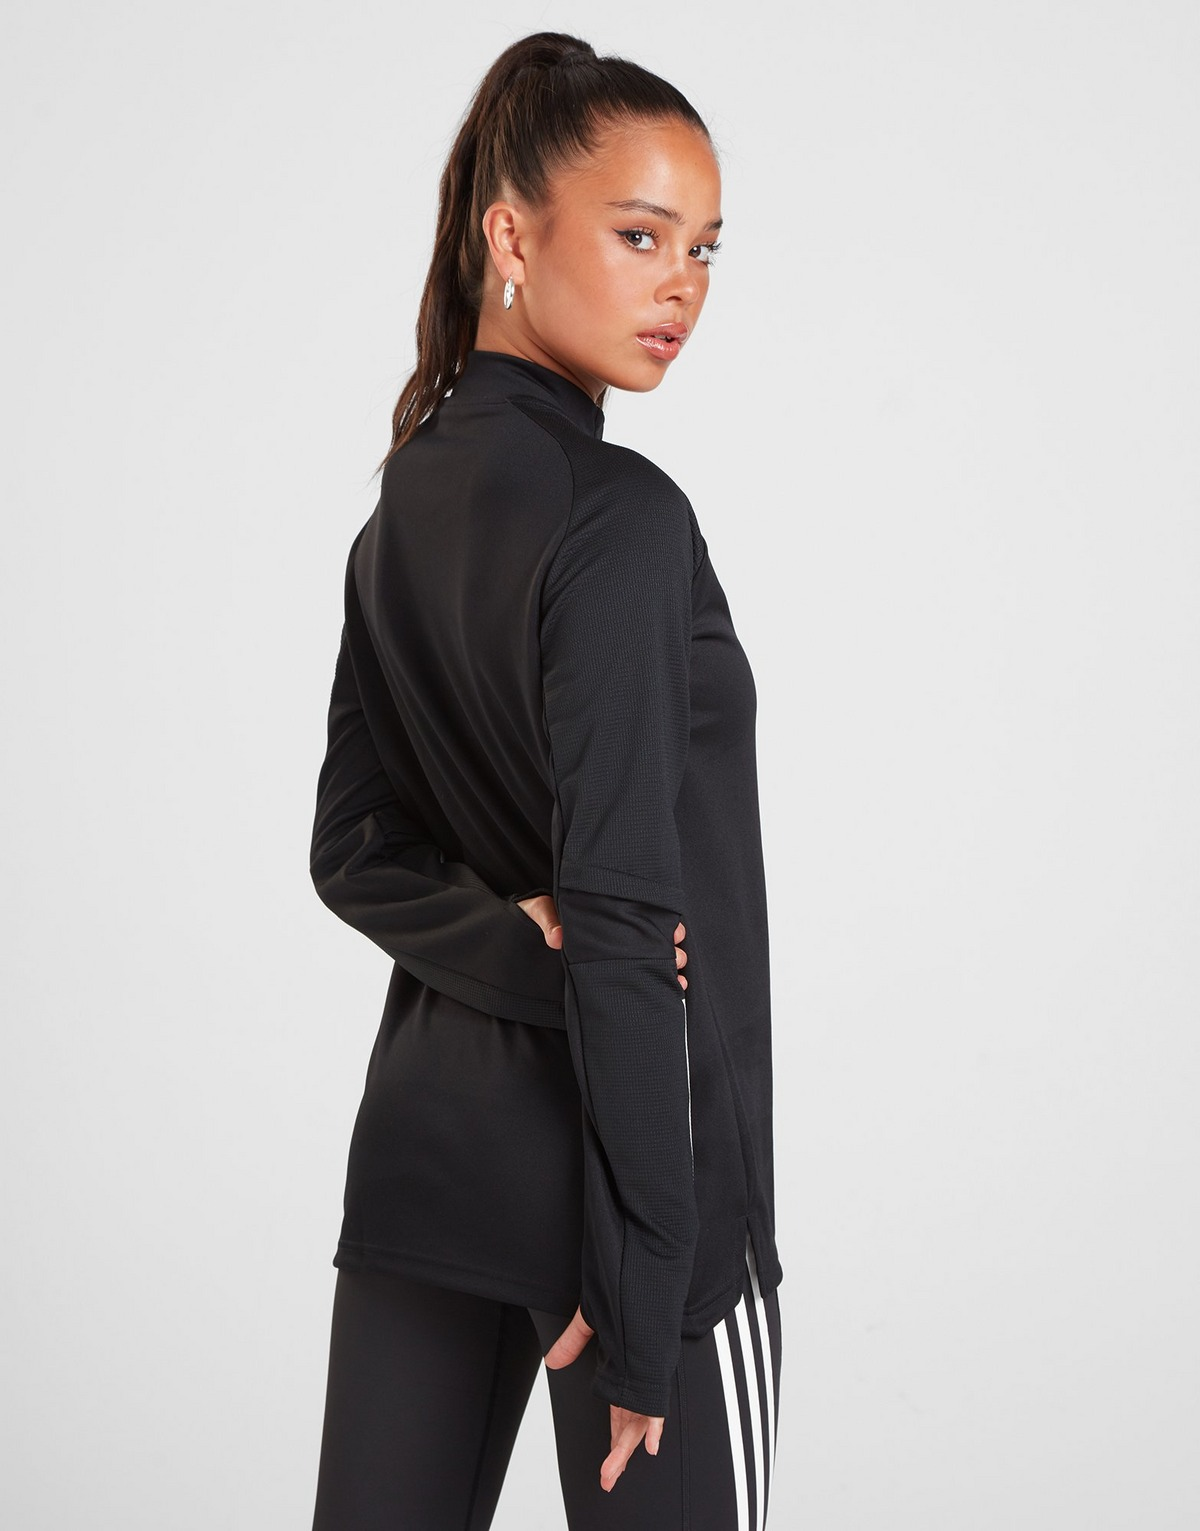 Adidas Condivo 1/4 Zip Track Top Women's